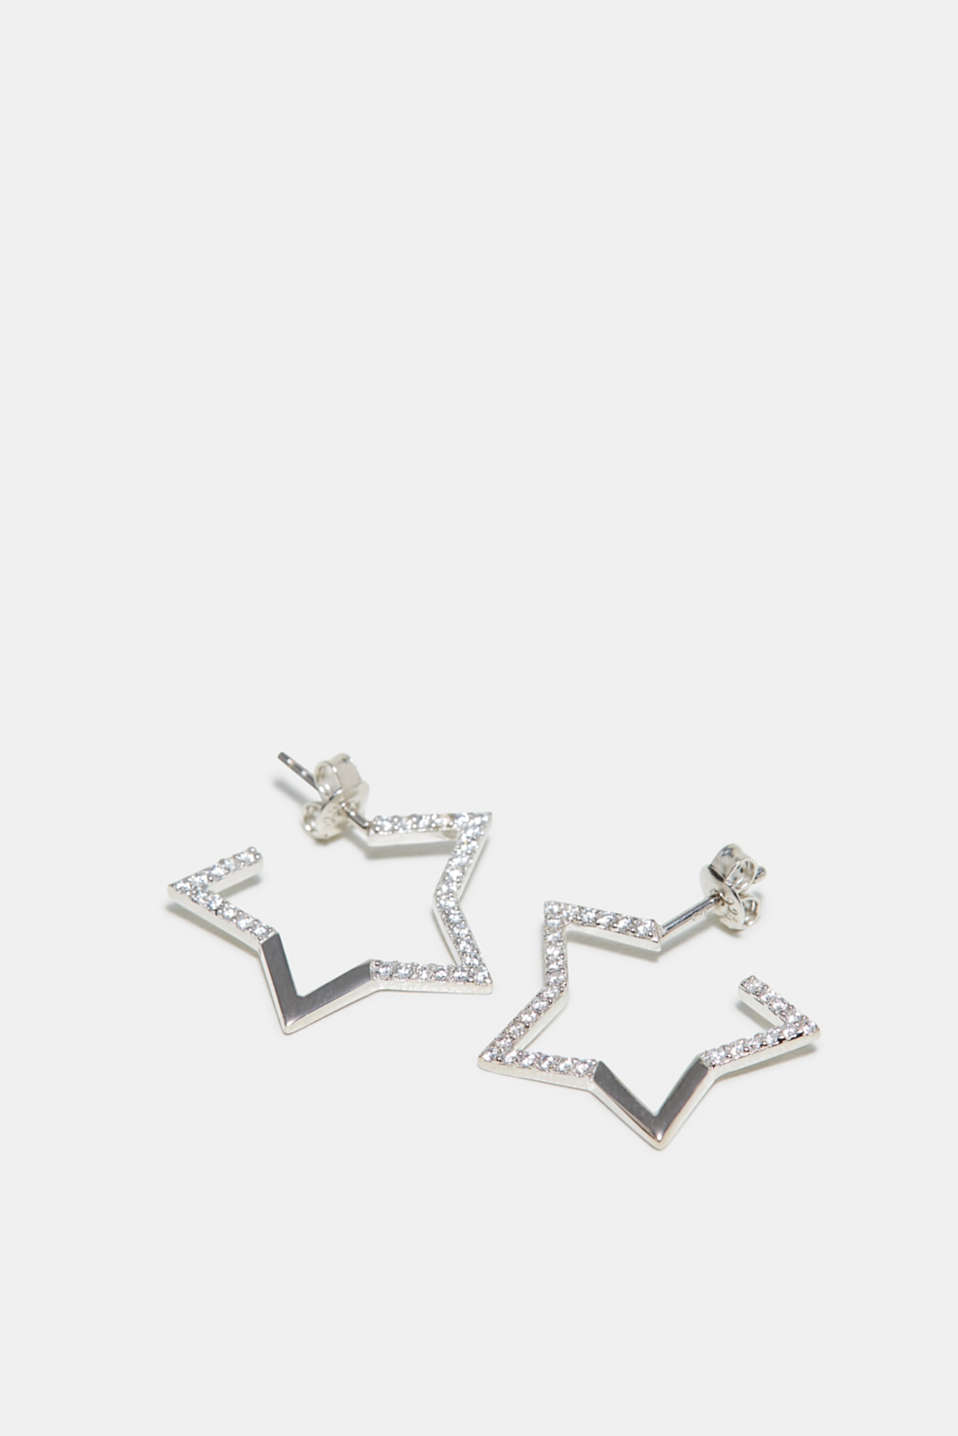 Esprit - Zirconia trim earrings made of sterling silver